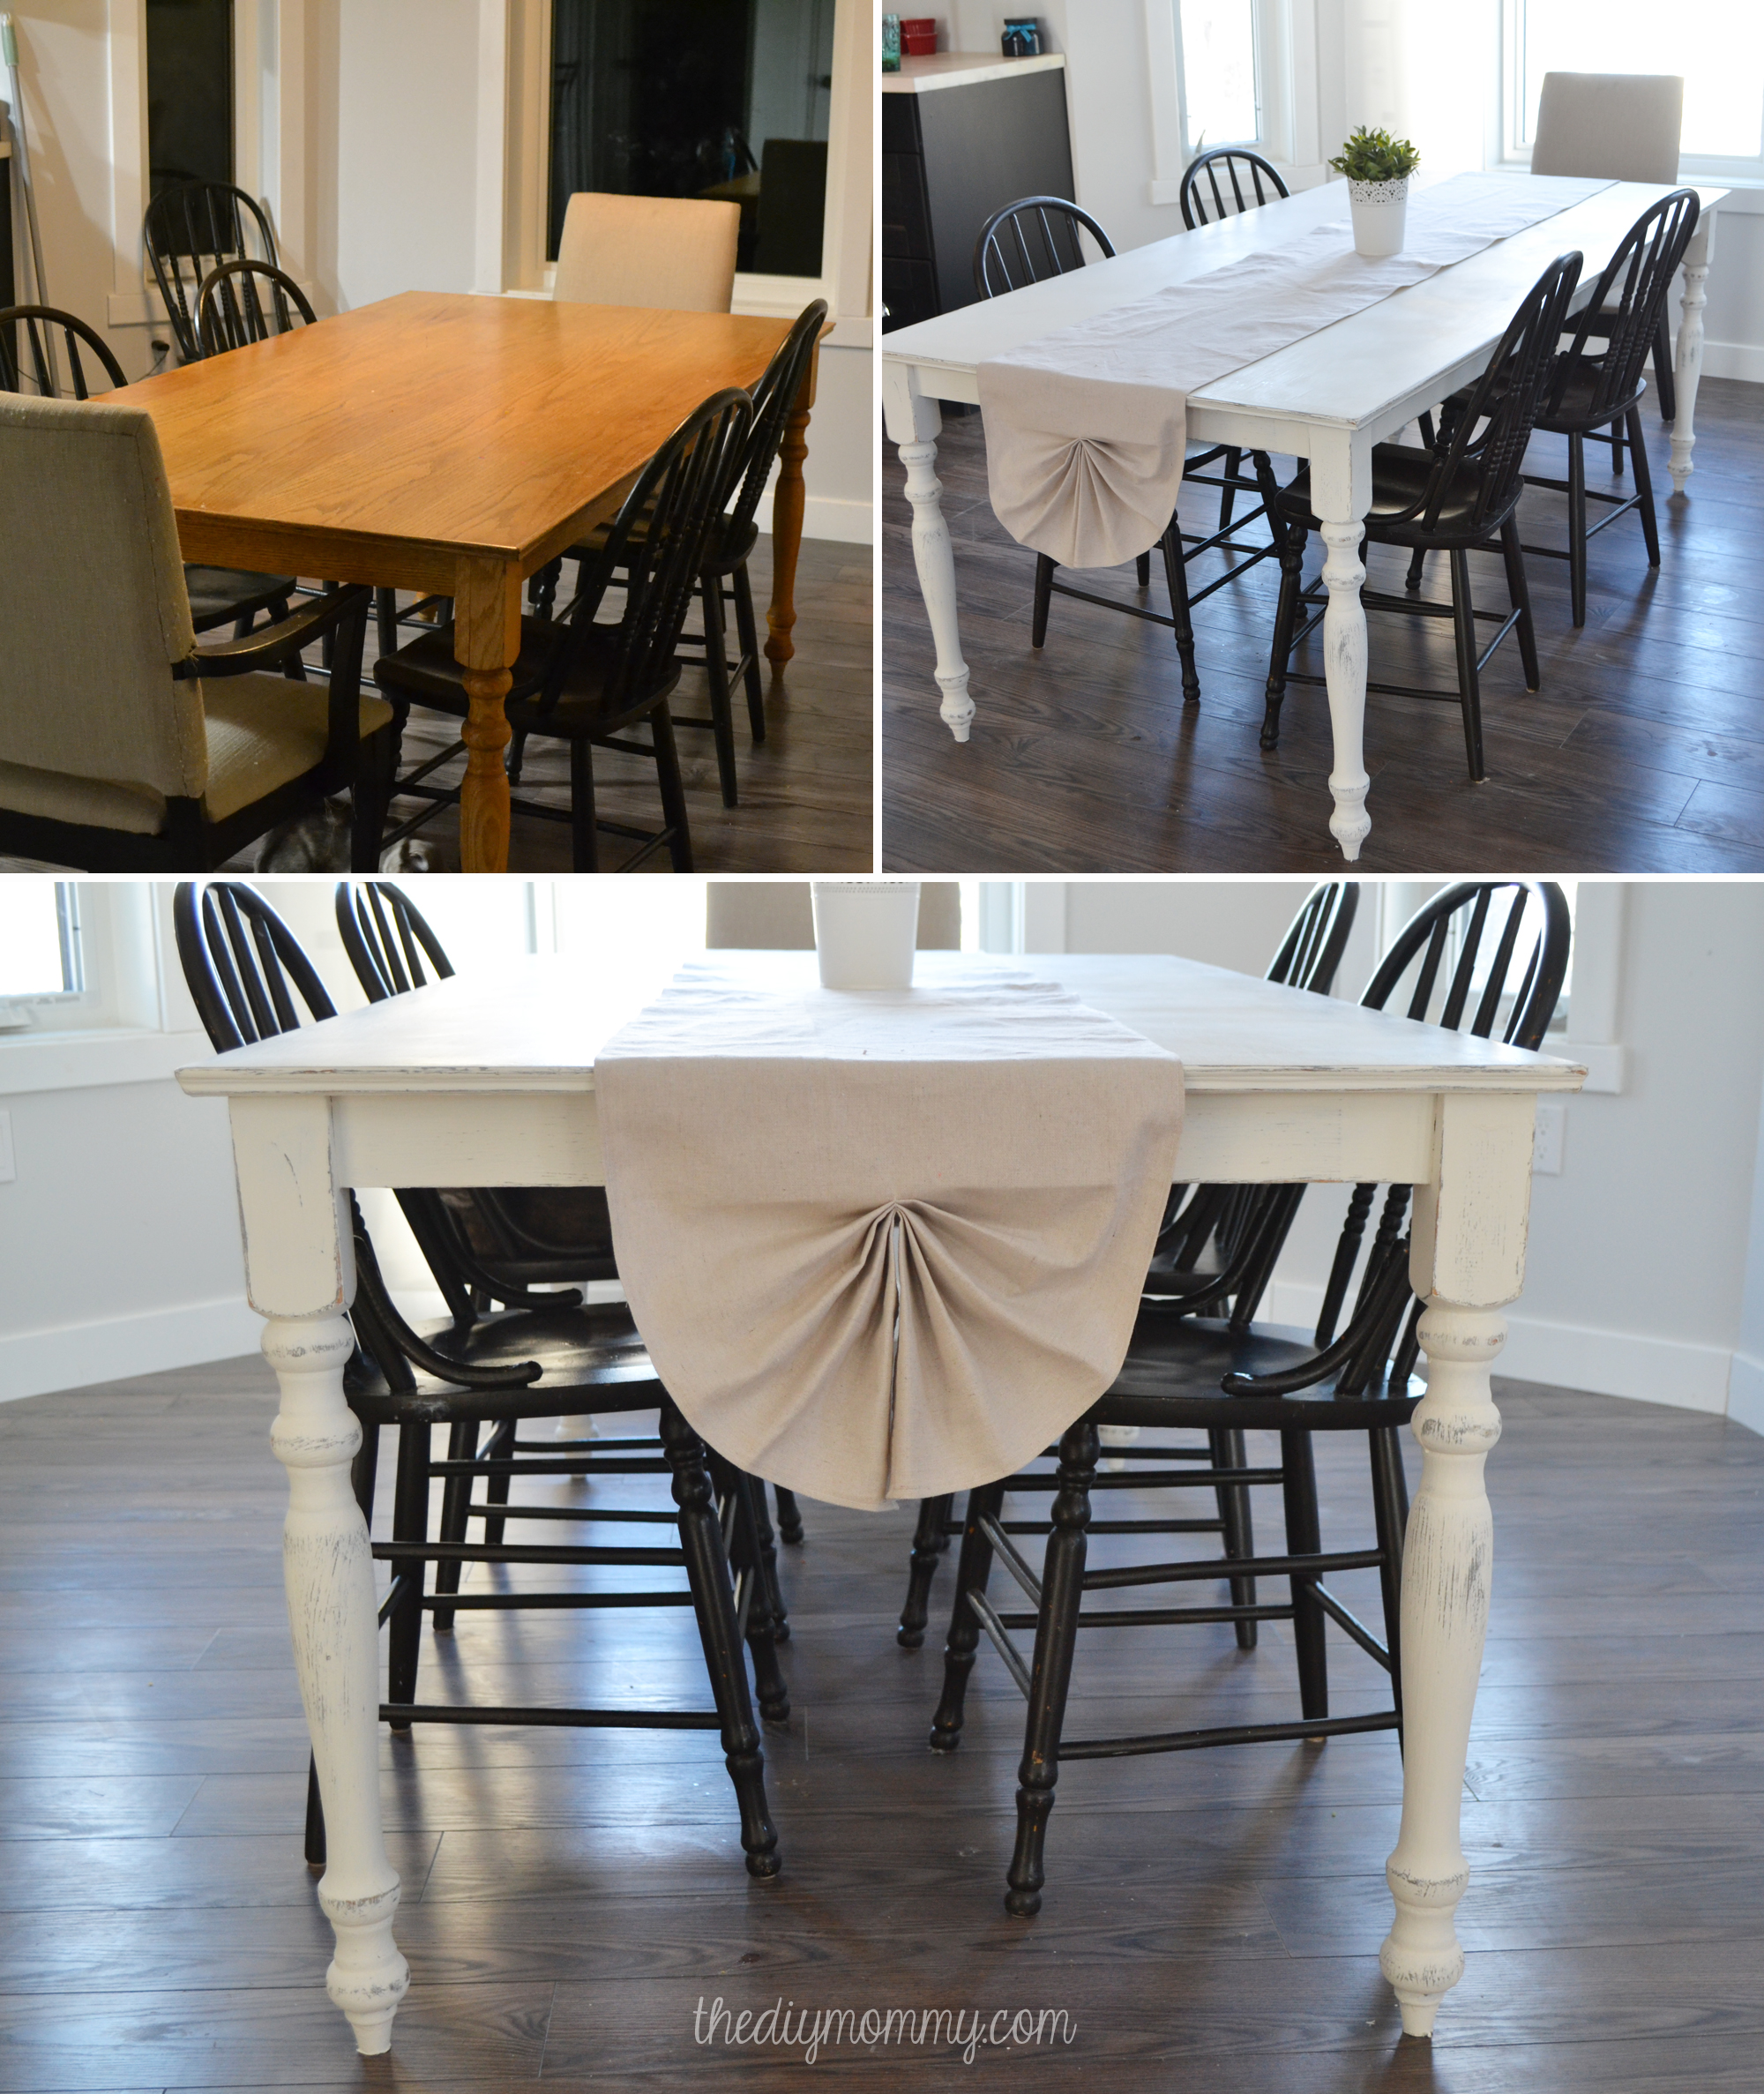 Diy dining table makeover - Shabby Chic Farmhouse Table With Diy Chalk Paint